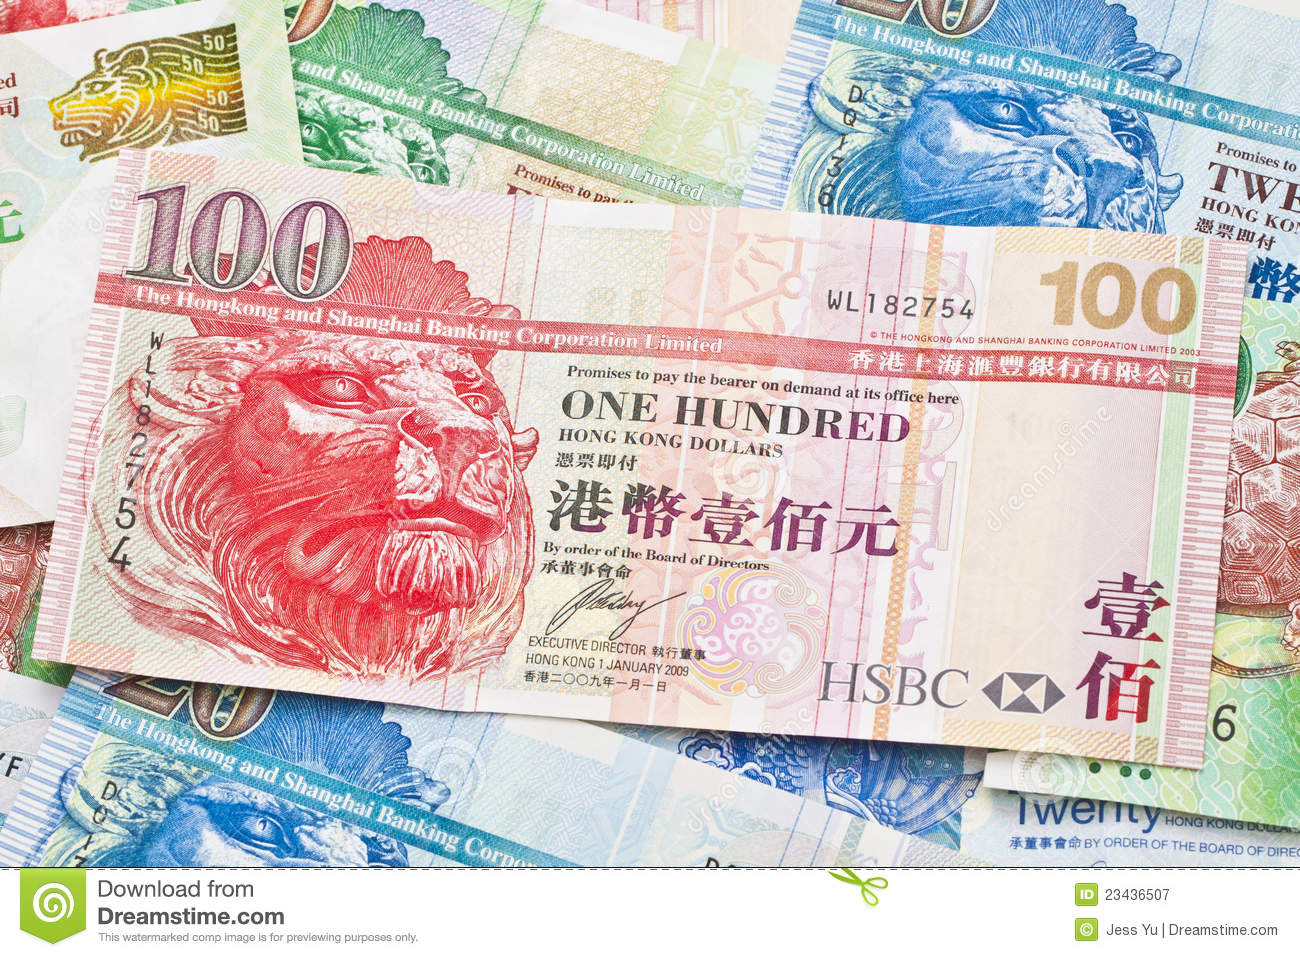 Hong Kong Currency Background Stock Image - Image of currency, hong: 23436507